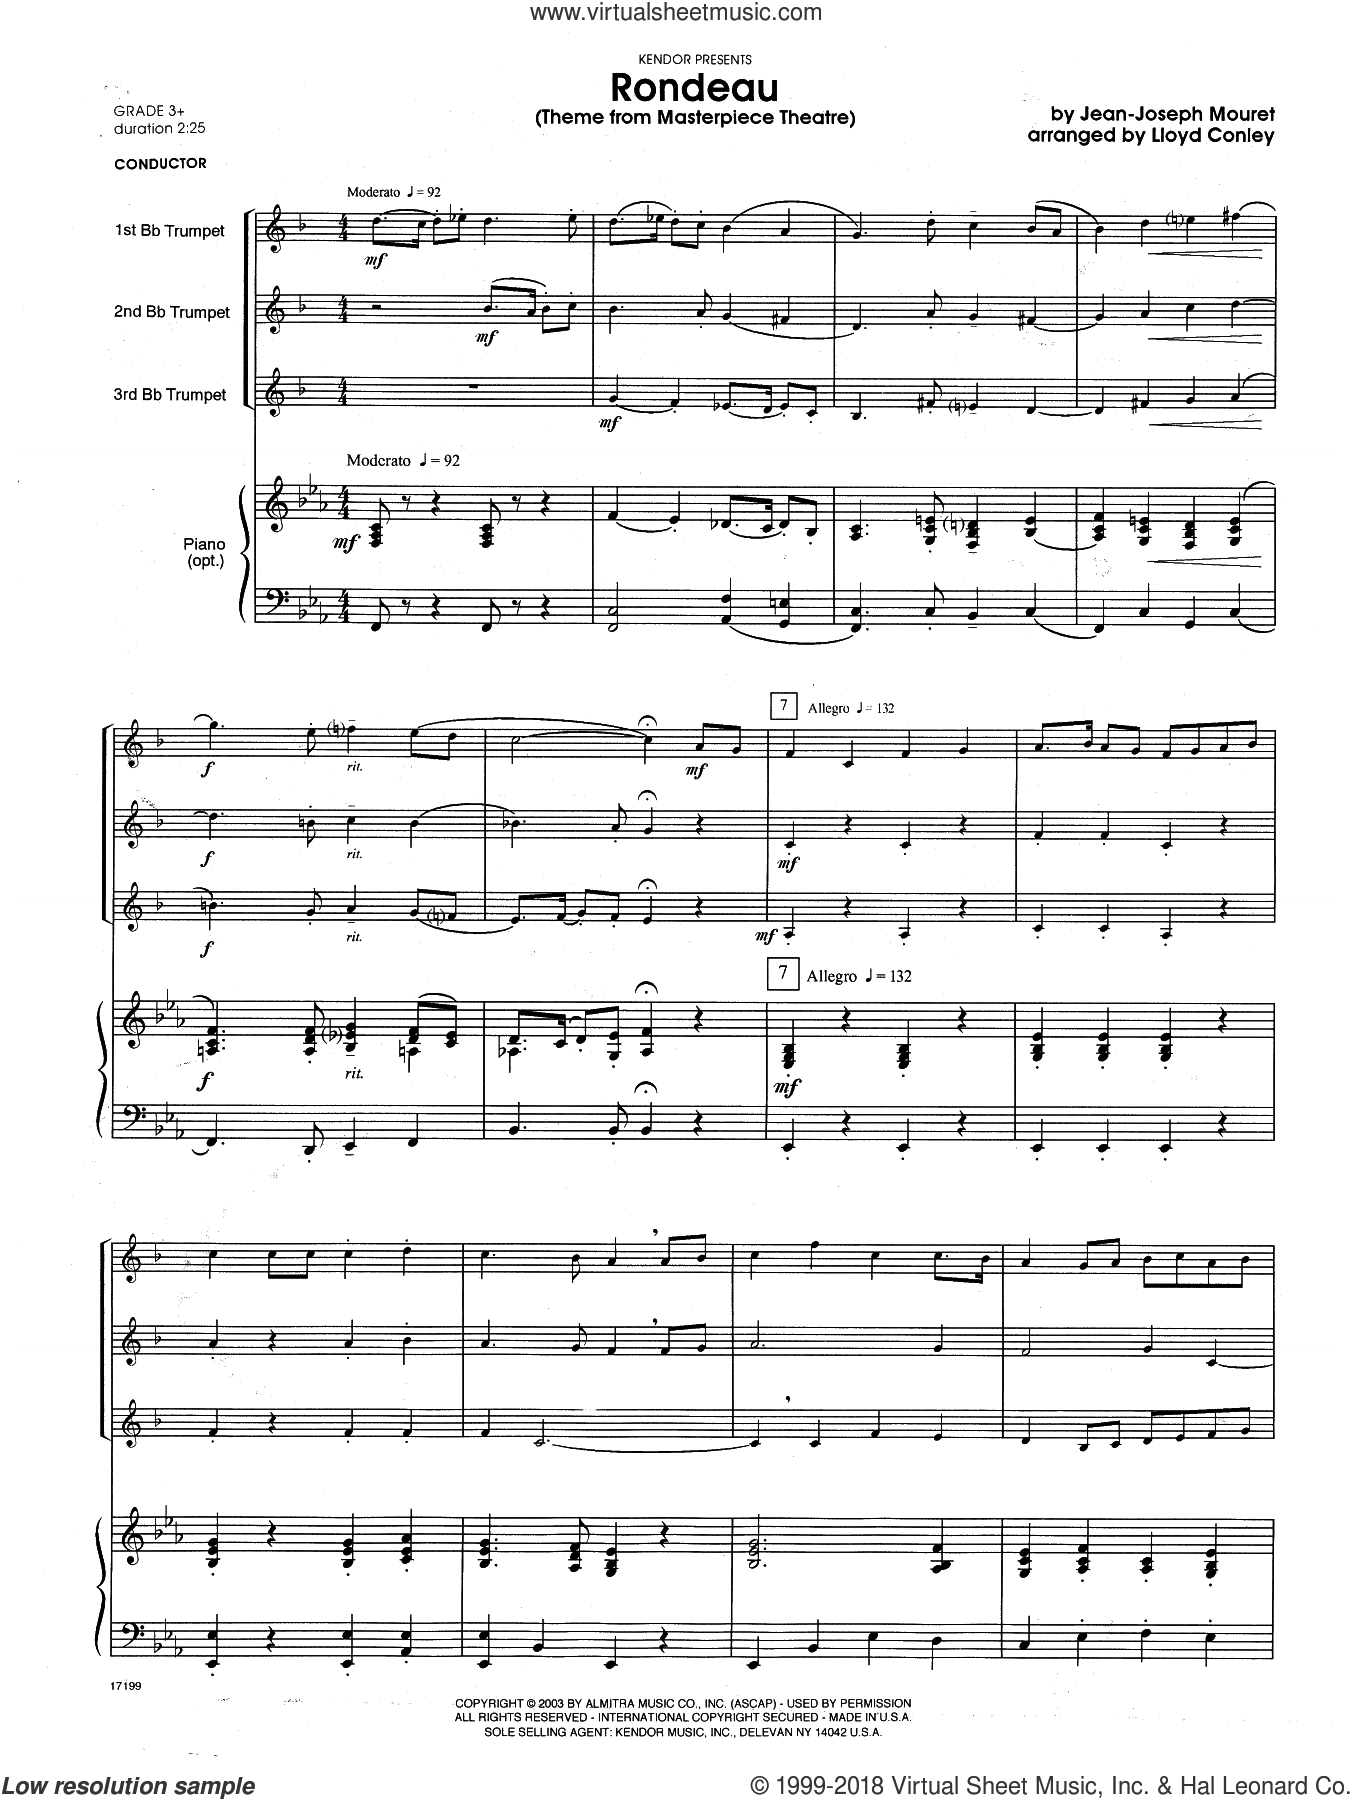 Rondeau (Theme From Masterpiece Theatre) (COMPLETE) sheet music for trumpet trio and piano by Lloyd Conley and Mouret, classical score, intermediate